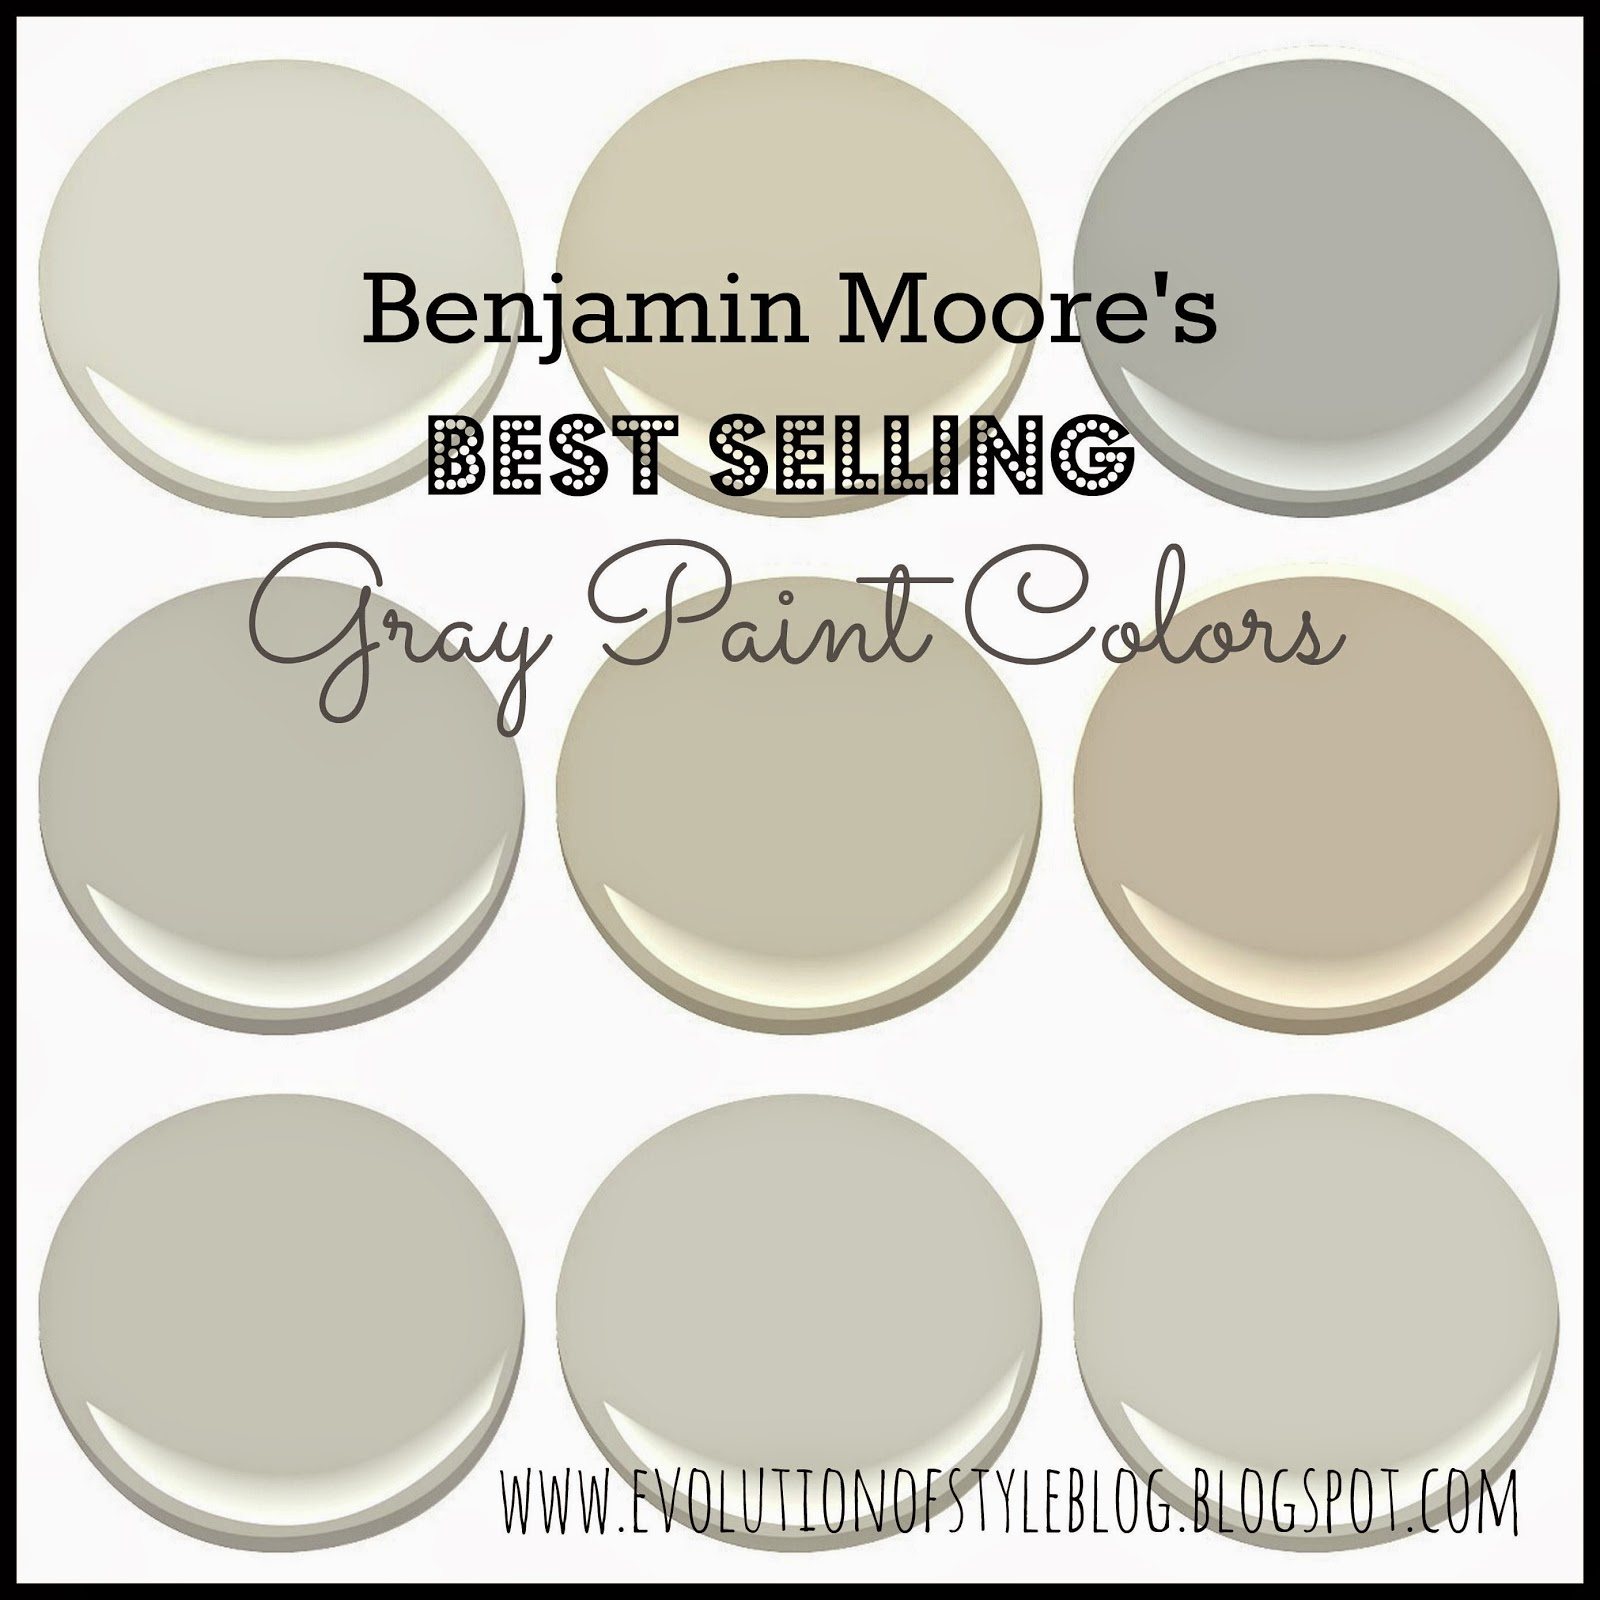 Benjamin Moore S Best Selling Grays Evolution Of Style,Barefoot Contessa Meatloaf Video